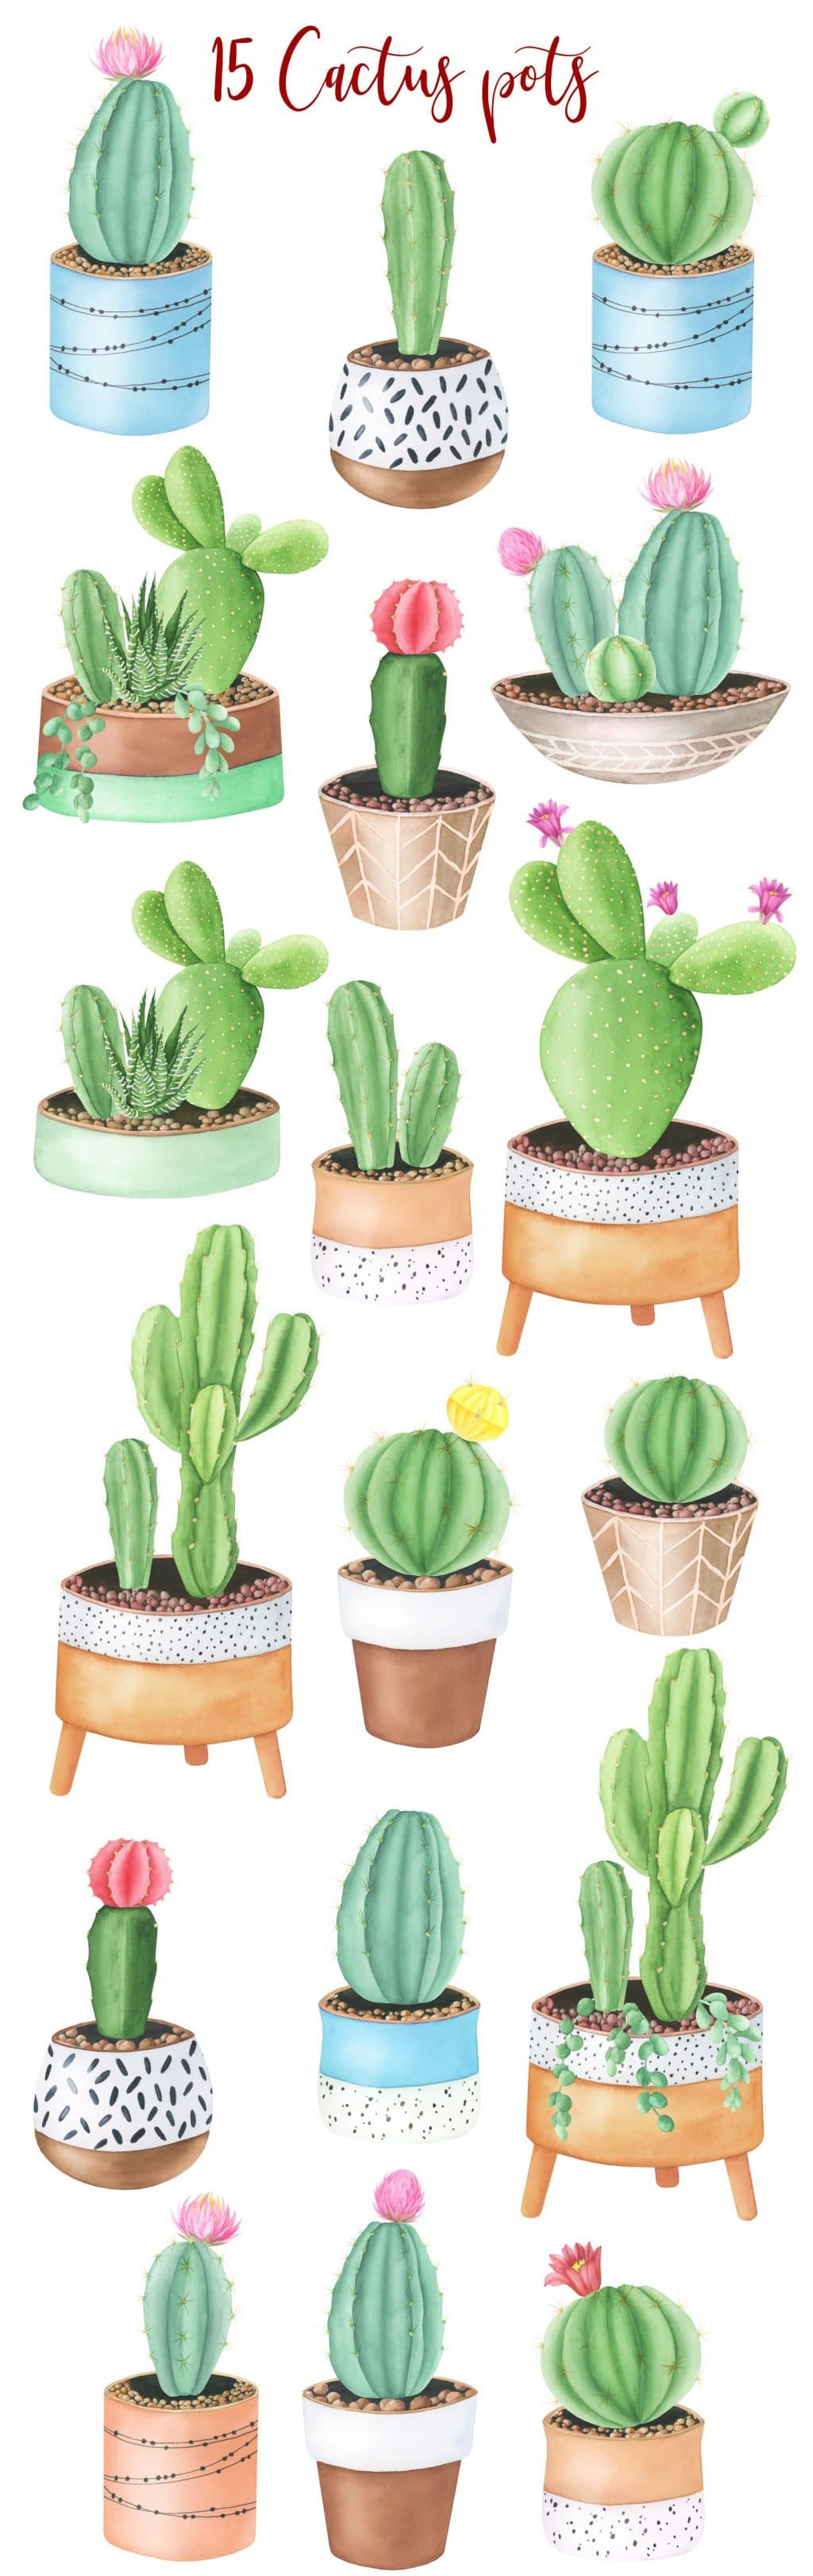 240+ Cactus Clipart 2021: Free and Premium Collections - title pots1